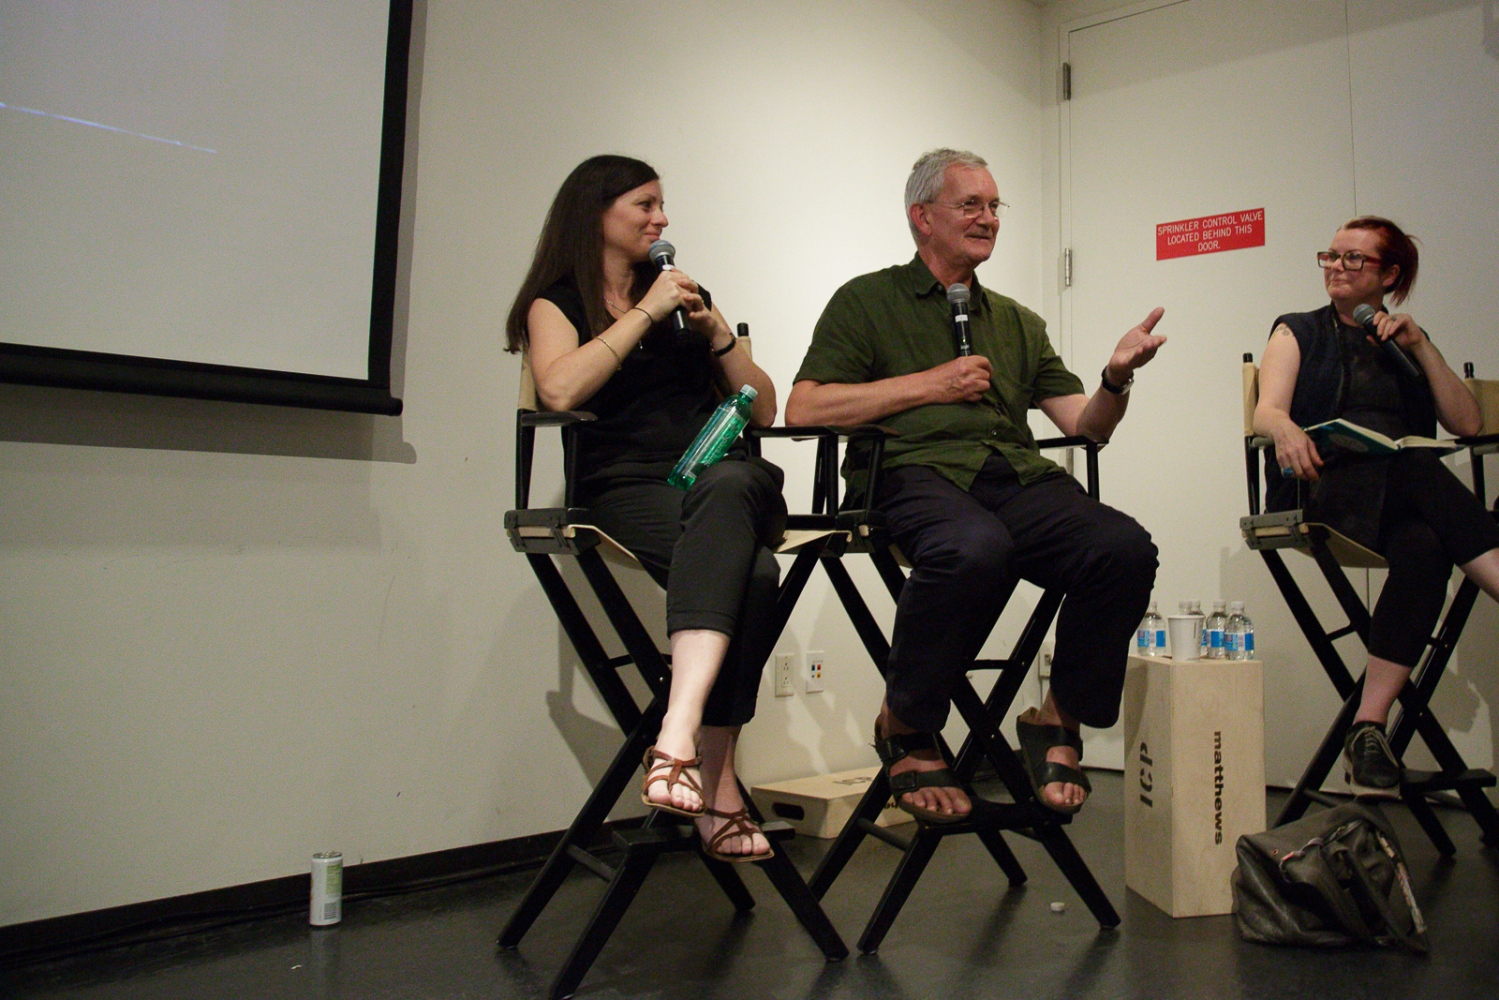 "June 21, 2017 - International Center of Photography School. New York City, NY, USA - (left to right): Olivia Arthur, Martin Parr and Lesley Martin during the panel discussion ""Magnum Photos Now- Photobooks: History, Future, Form""."